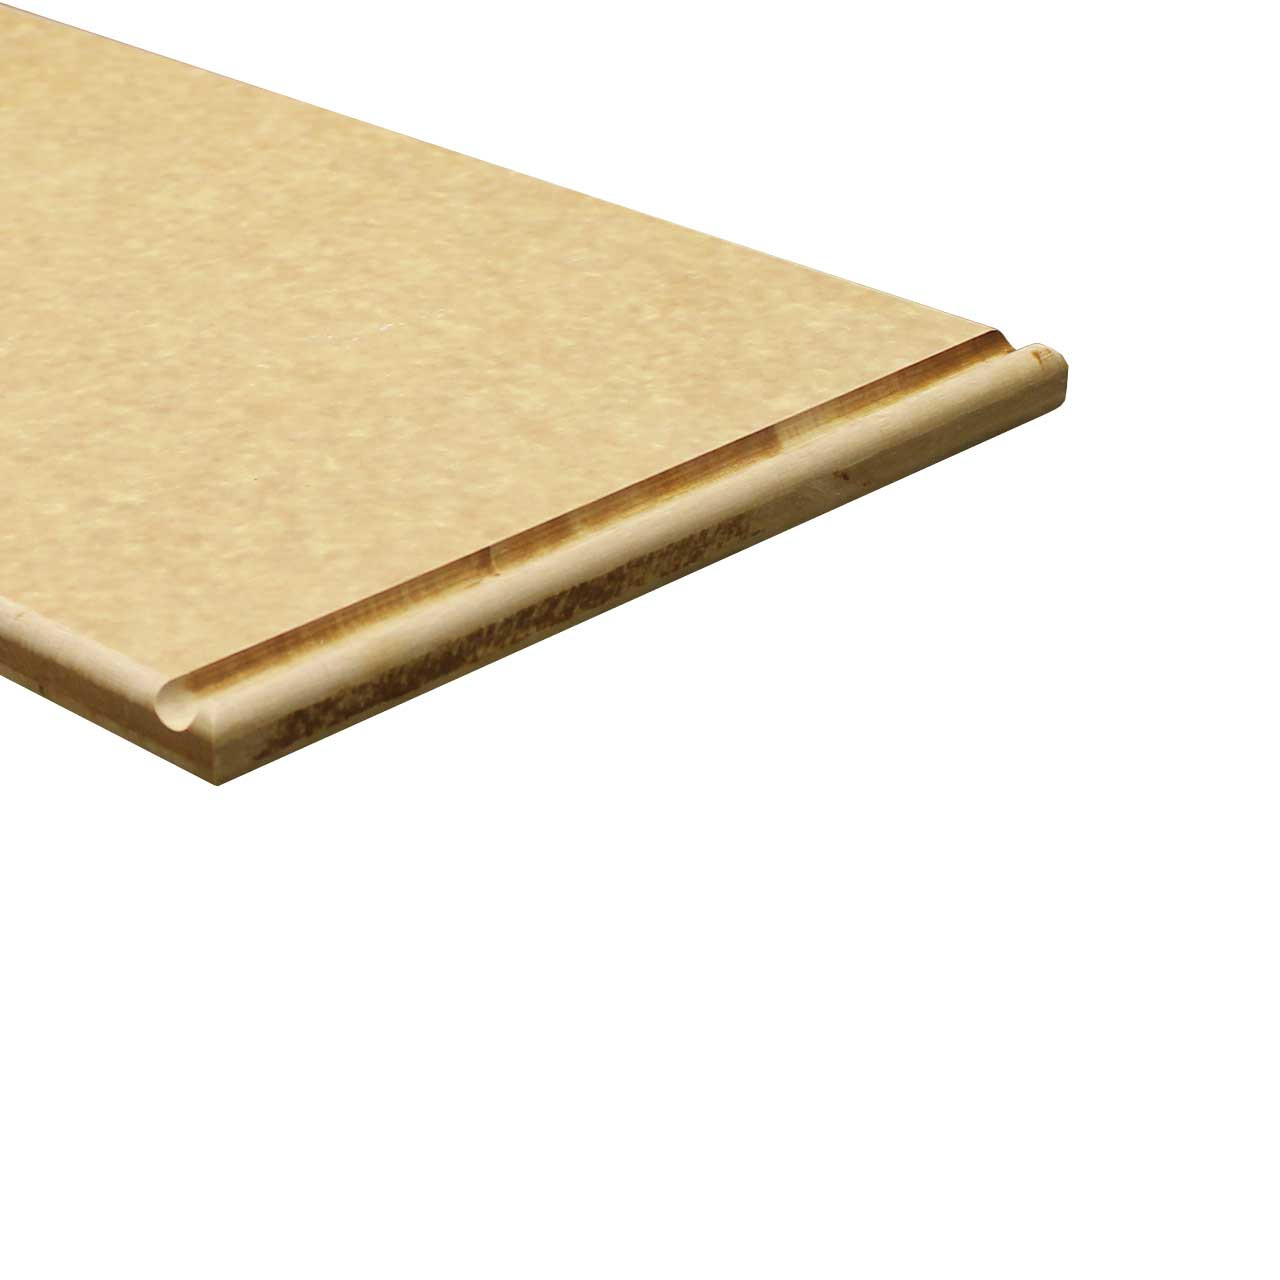 Pull Out Richlite Cutting Board 3 4 Inch Thick Cutting Board Company Commercial Quality